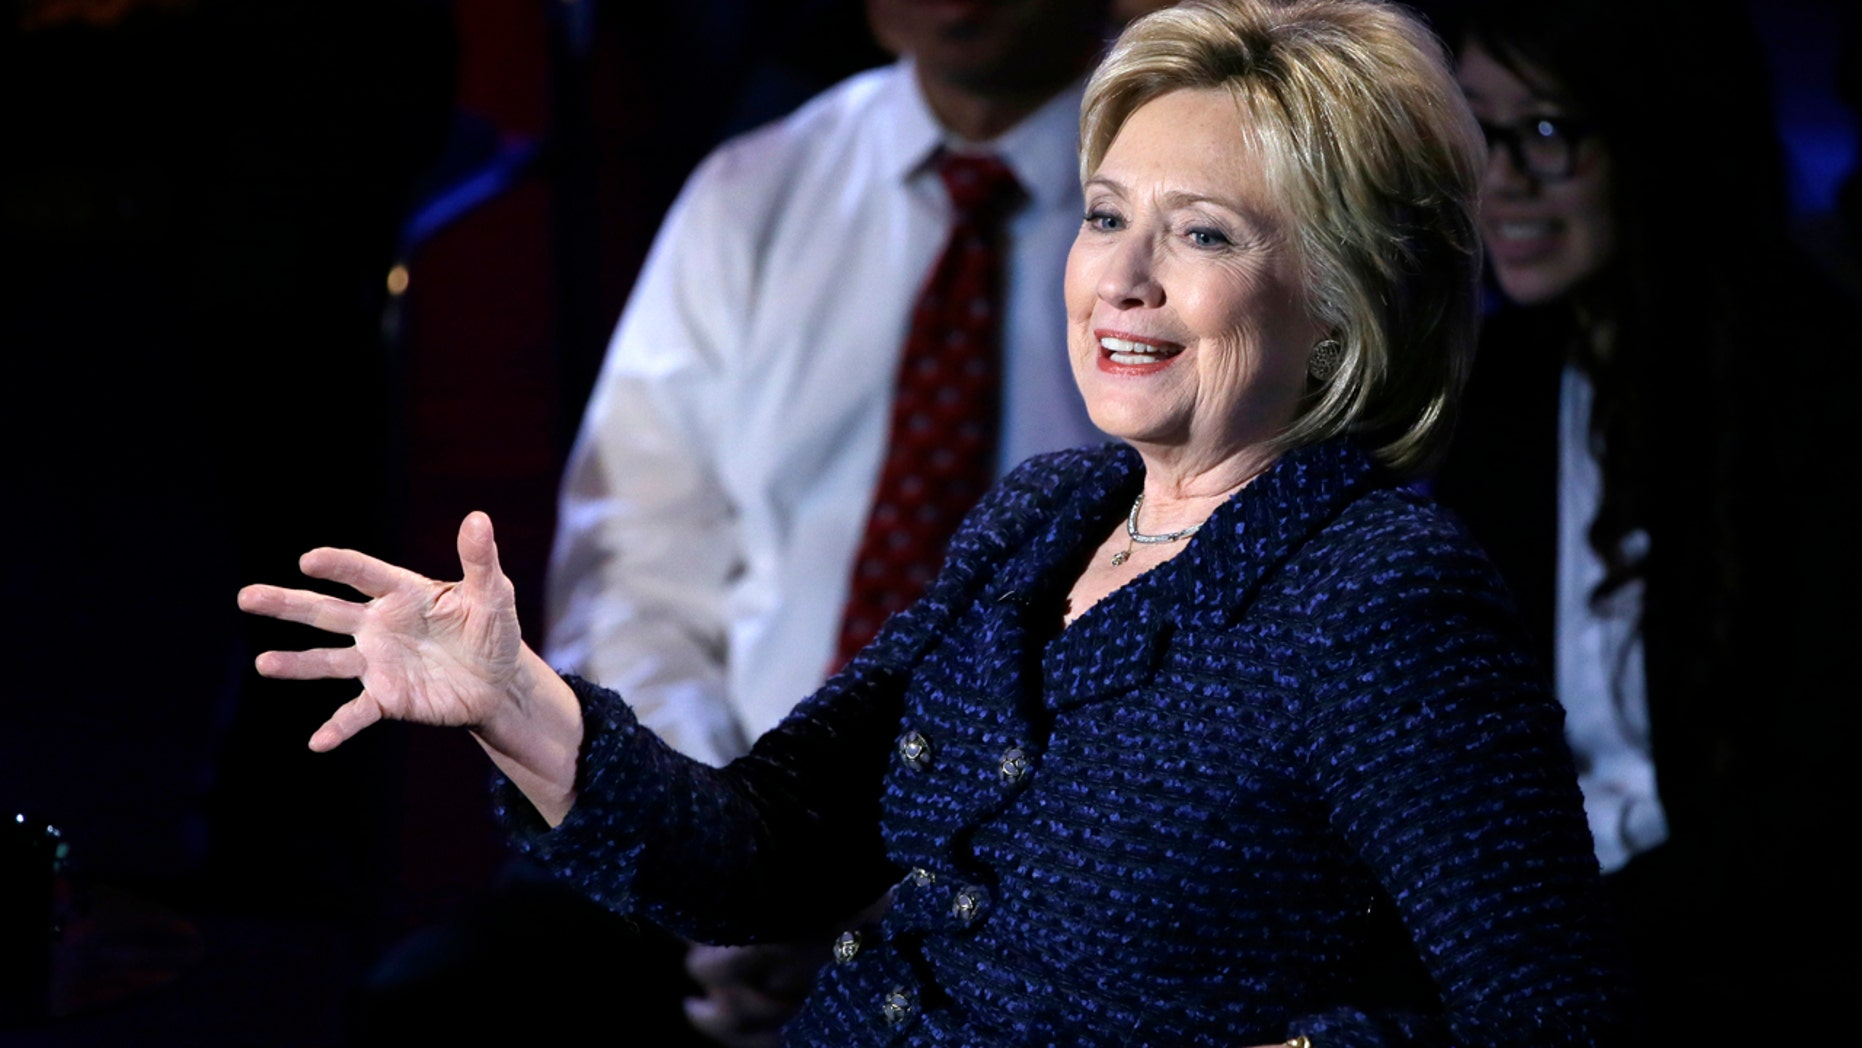 Democratic presidential candidate, Hillary Clinton speaks during the Brown & Black Forum, Monday, Jan. 11, 2016, in Des Moines, Iowa. (AP Photo/Charlie Neibergall)